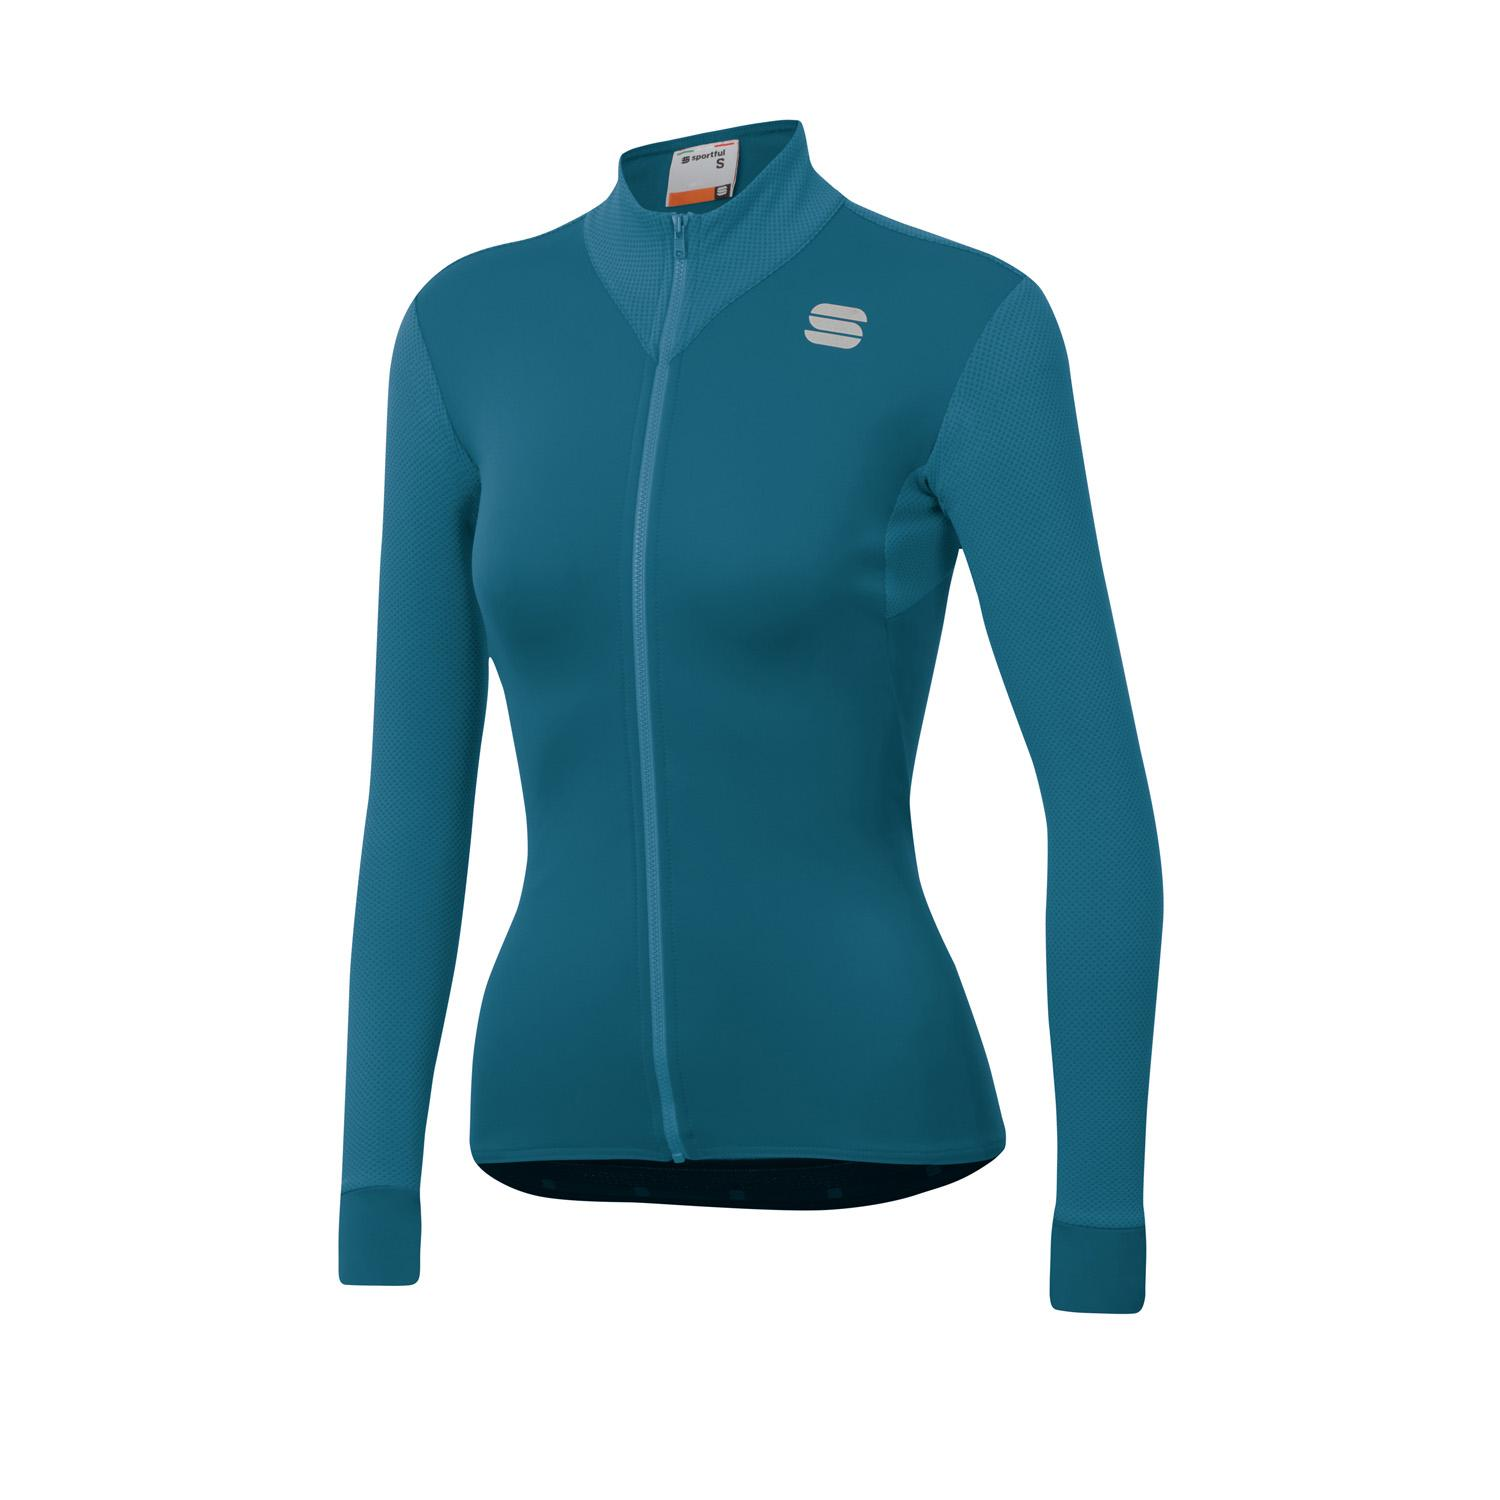 Sportful Fietsshirt lange mouwen Dames Blauw - KELLY THERMAL JERSEY BLUE CORSAIR